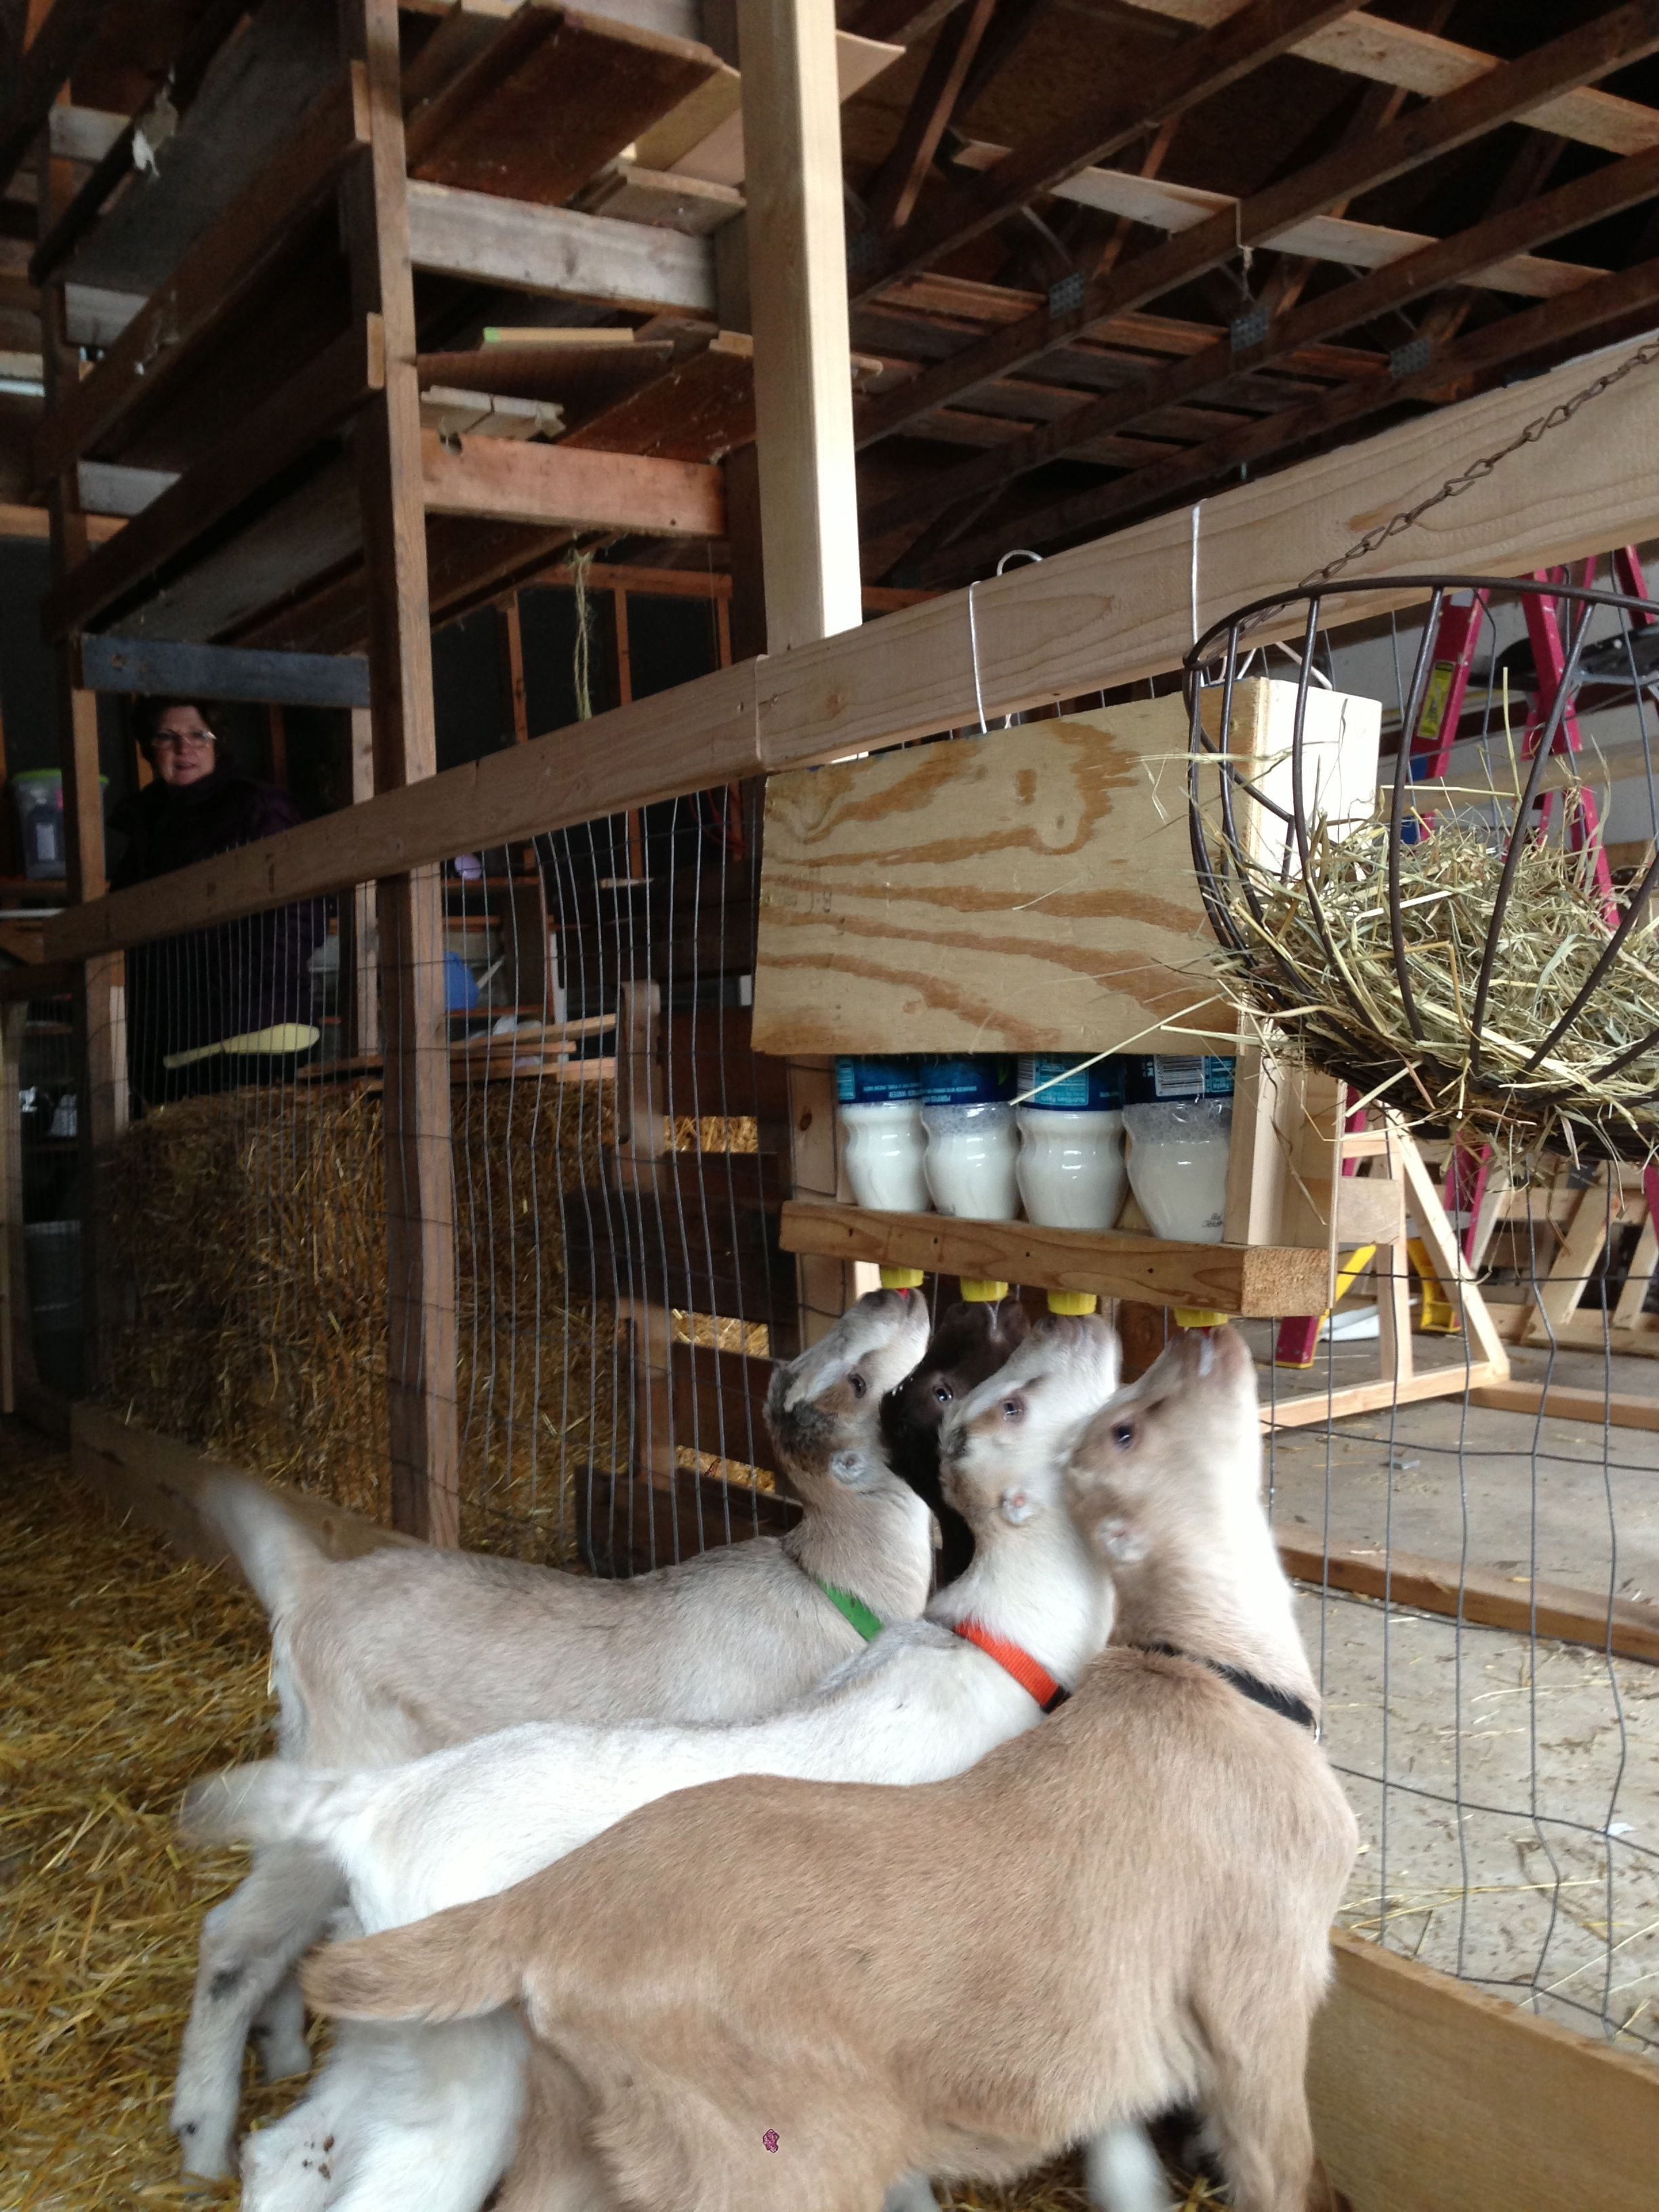 shed goats plans hay sheep of homemade ideas house for goat awesome feeder